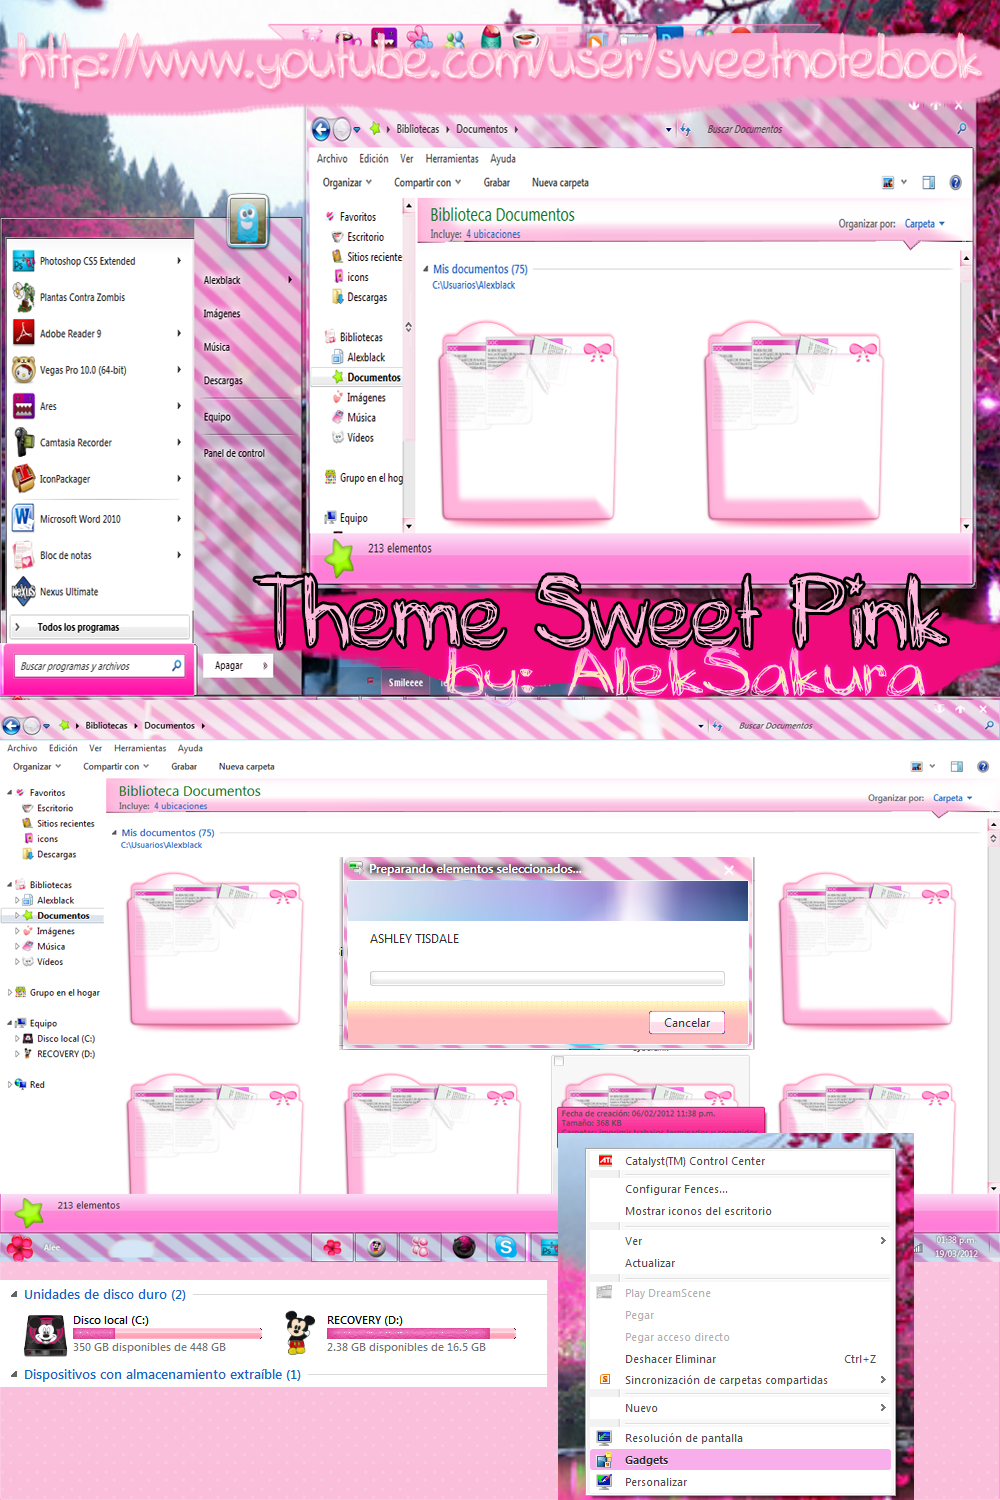 Sweet Pink theme windows 7 by AlekSakura